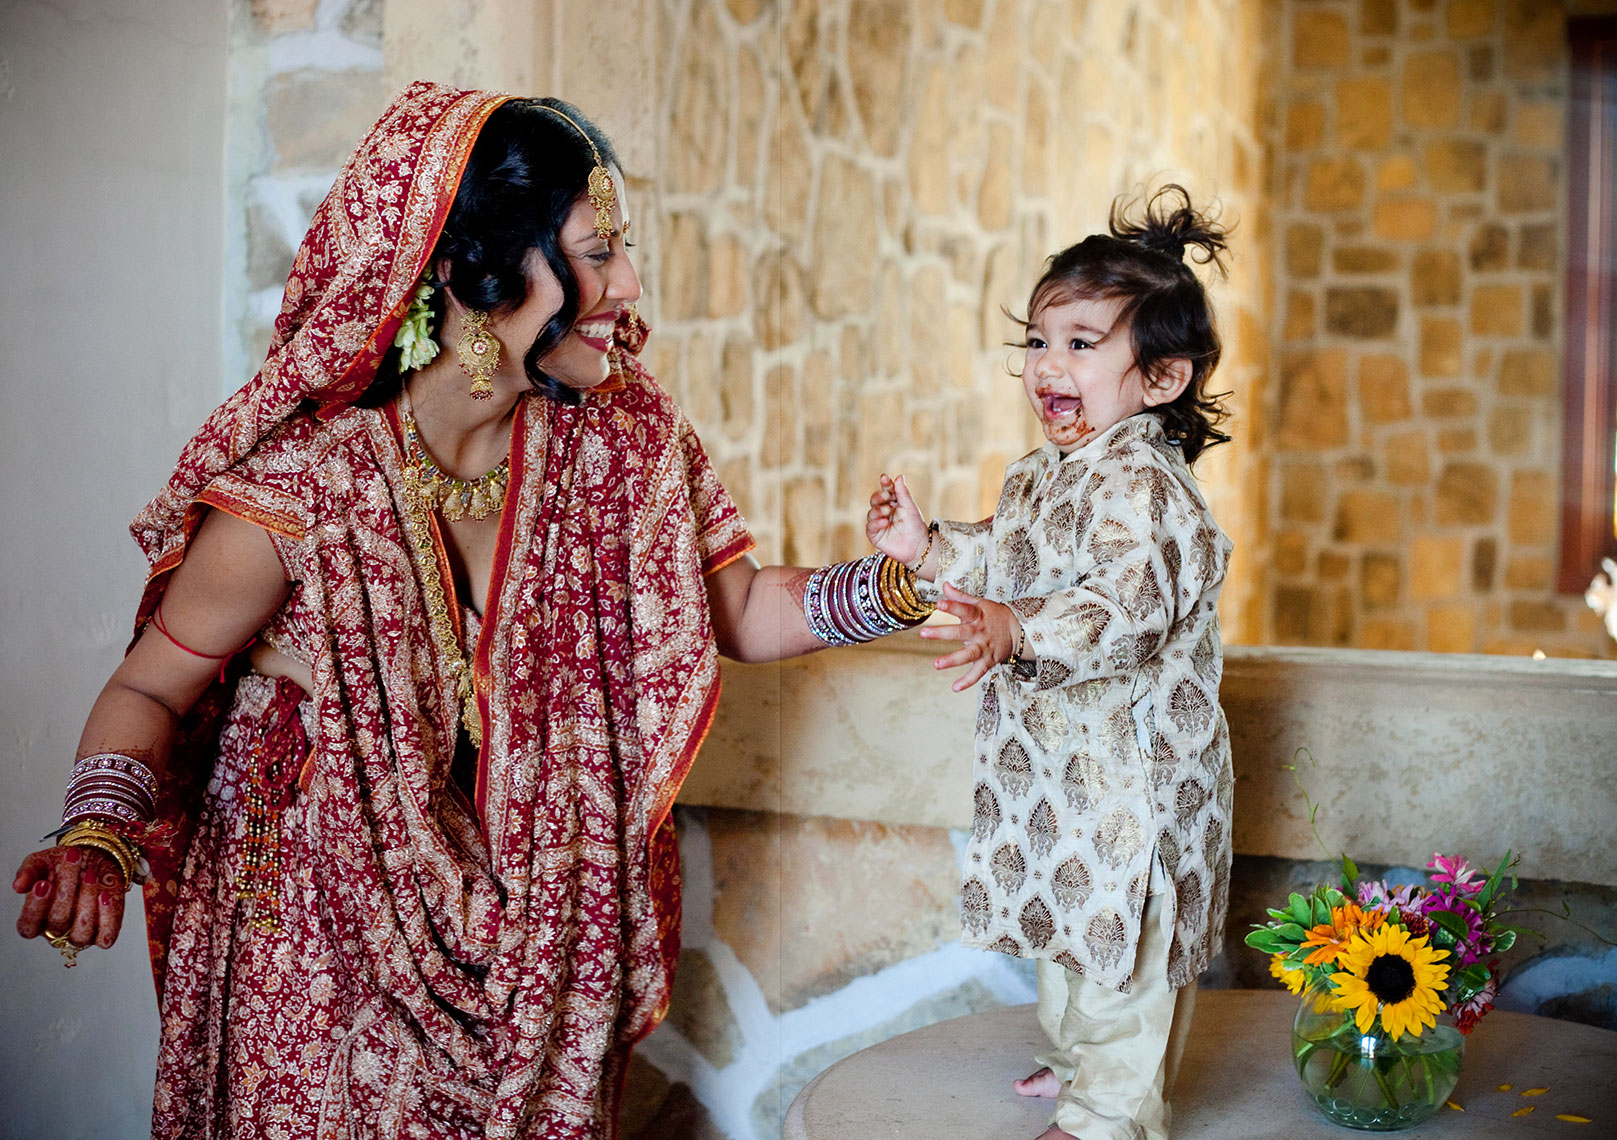 East Indian Bride with son